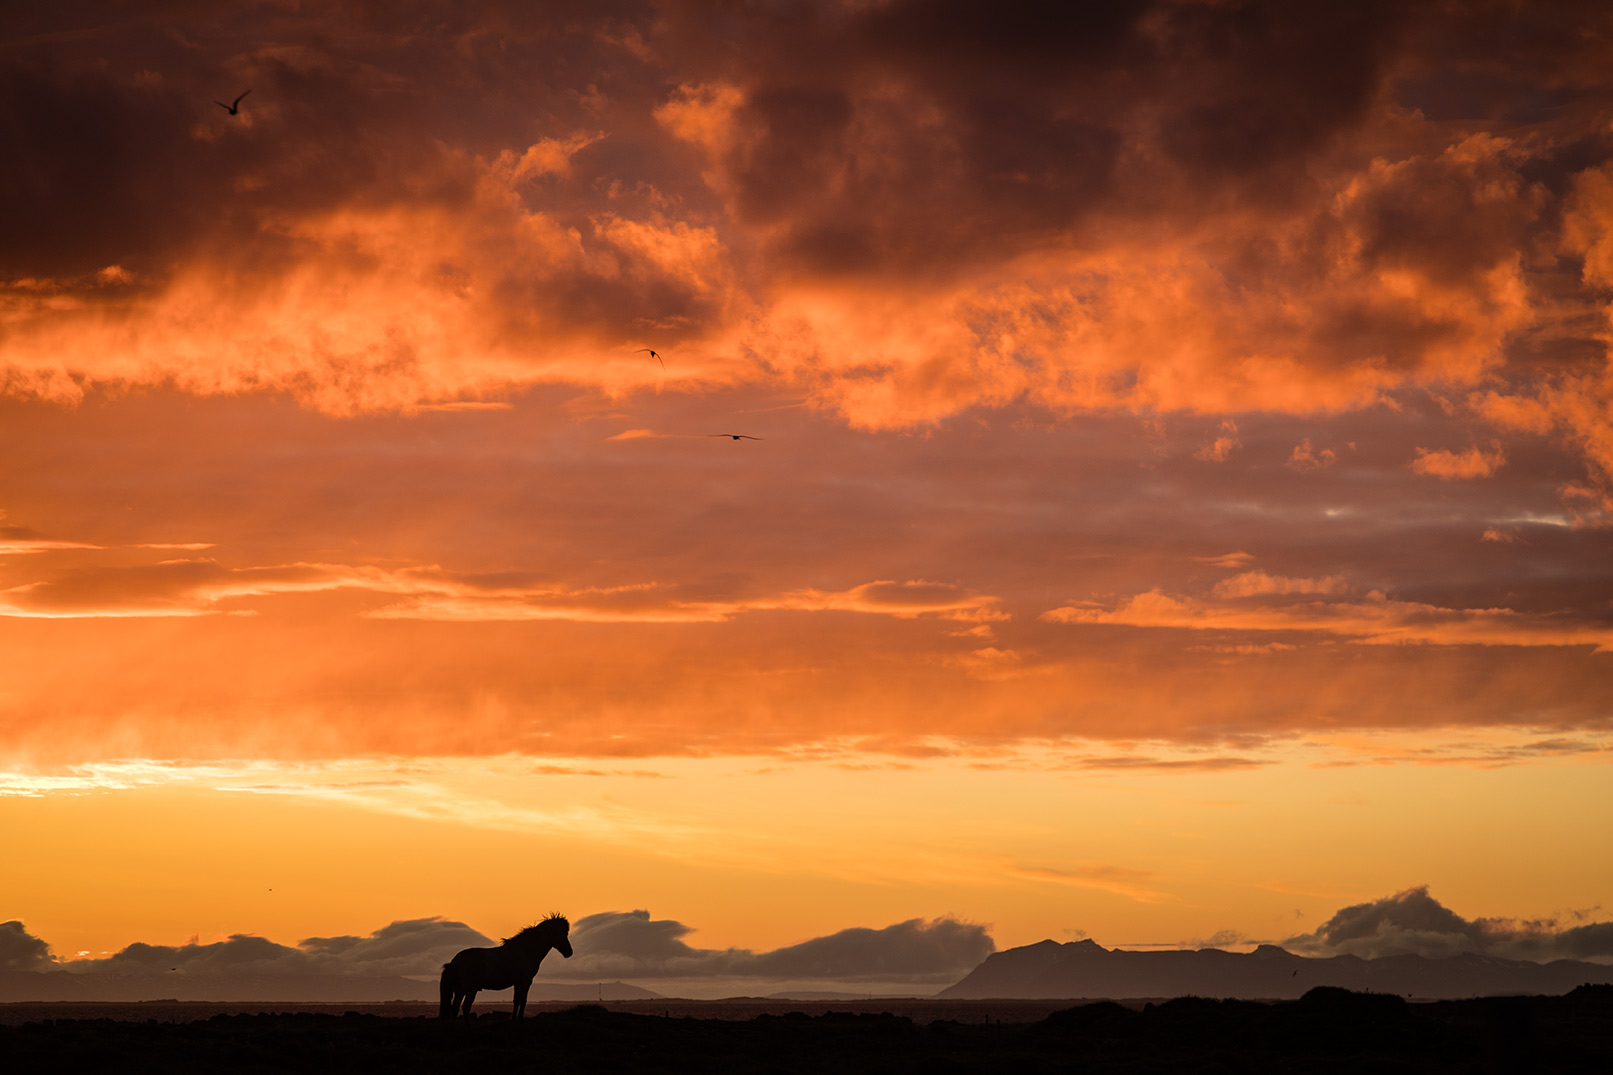 Iceland Horse at Midnight Sun. Wonderful landscape